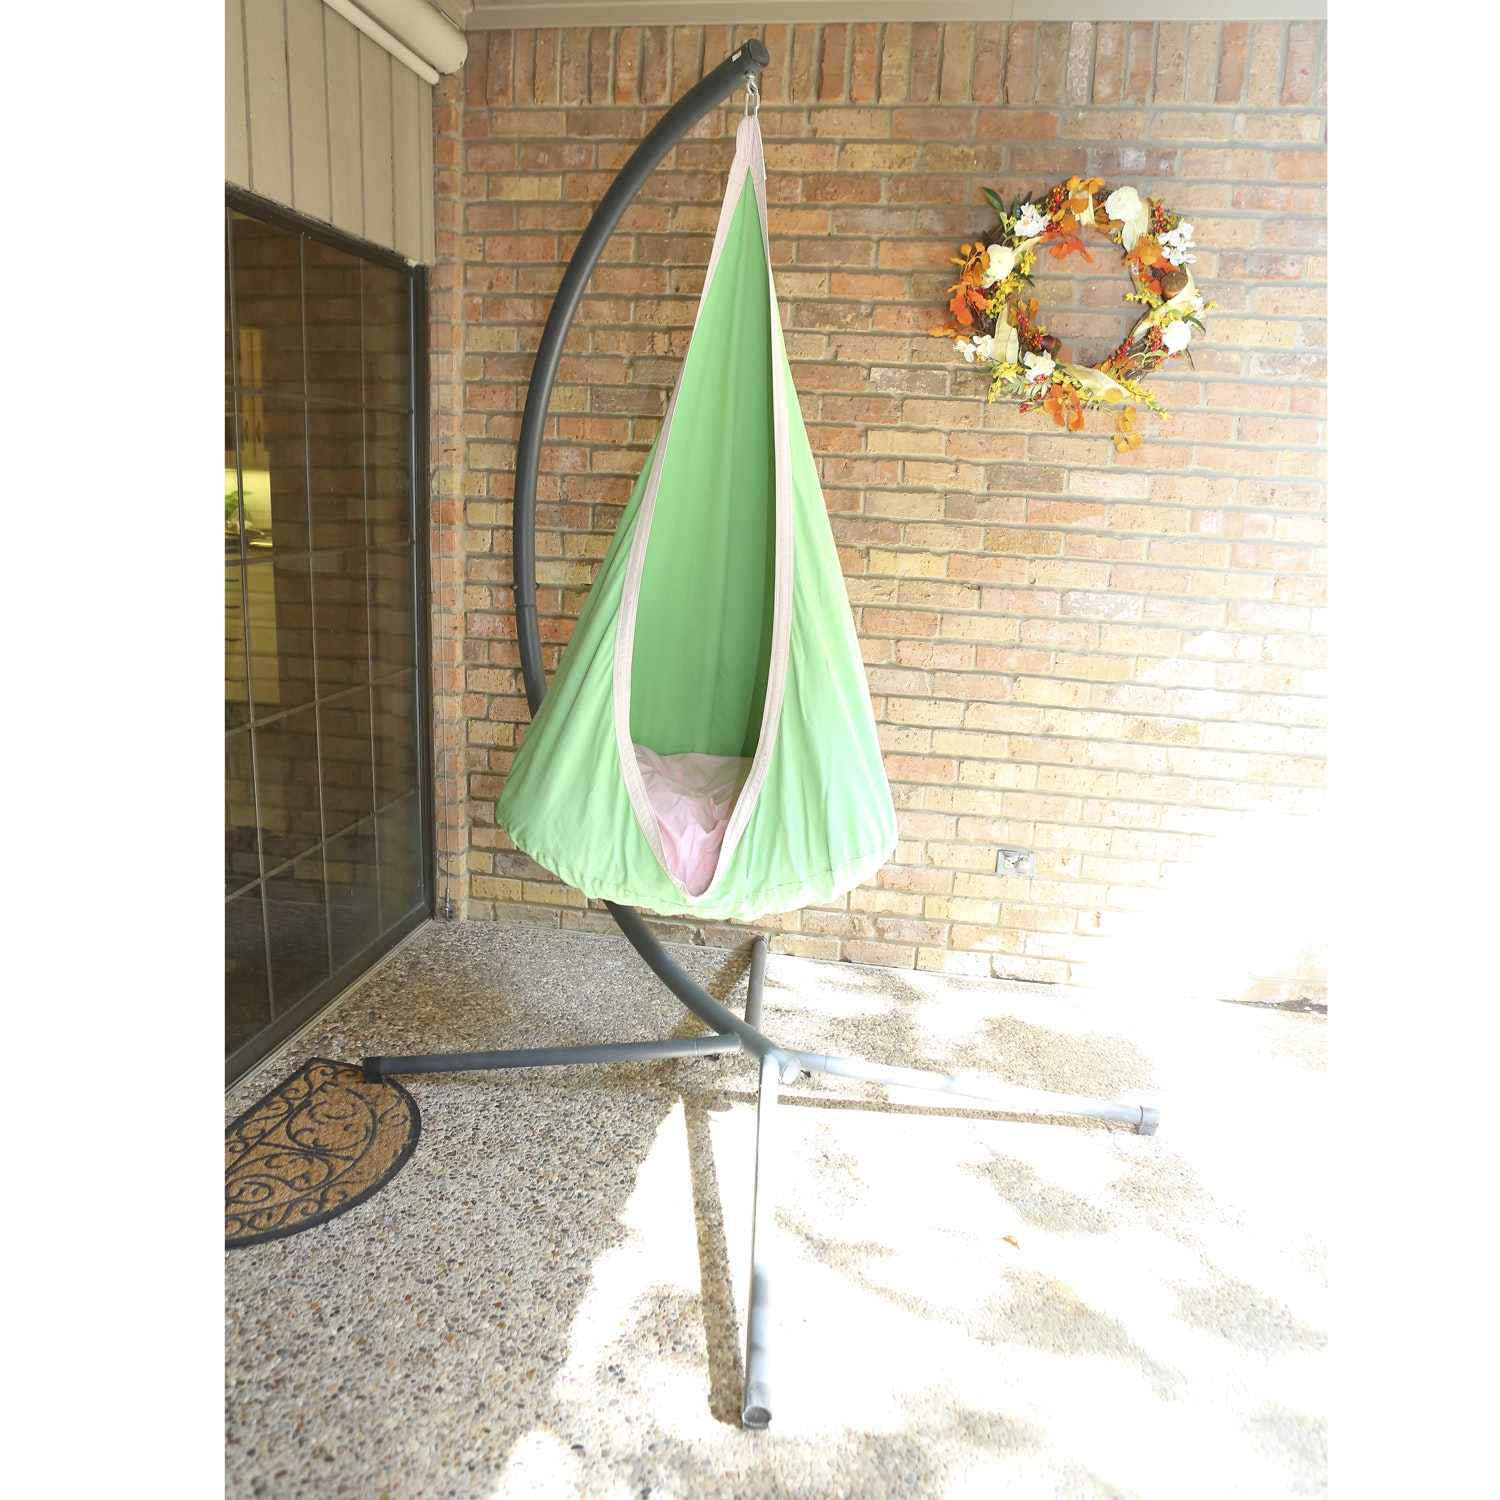 Hanging Hammock Chair with Freestanding Base